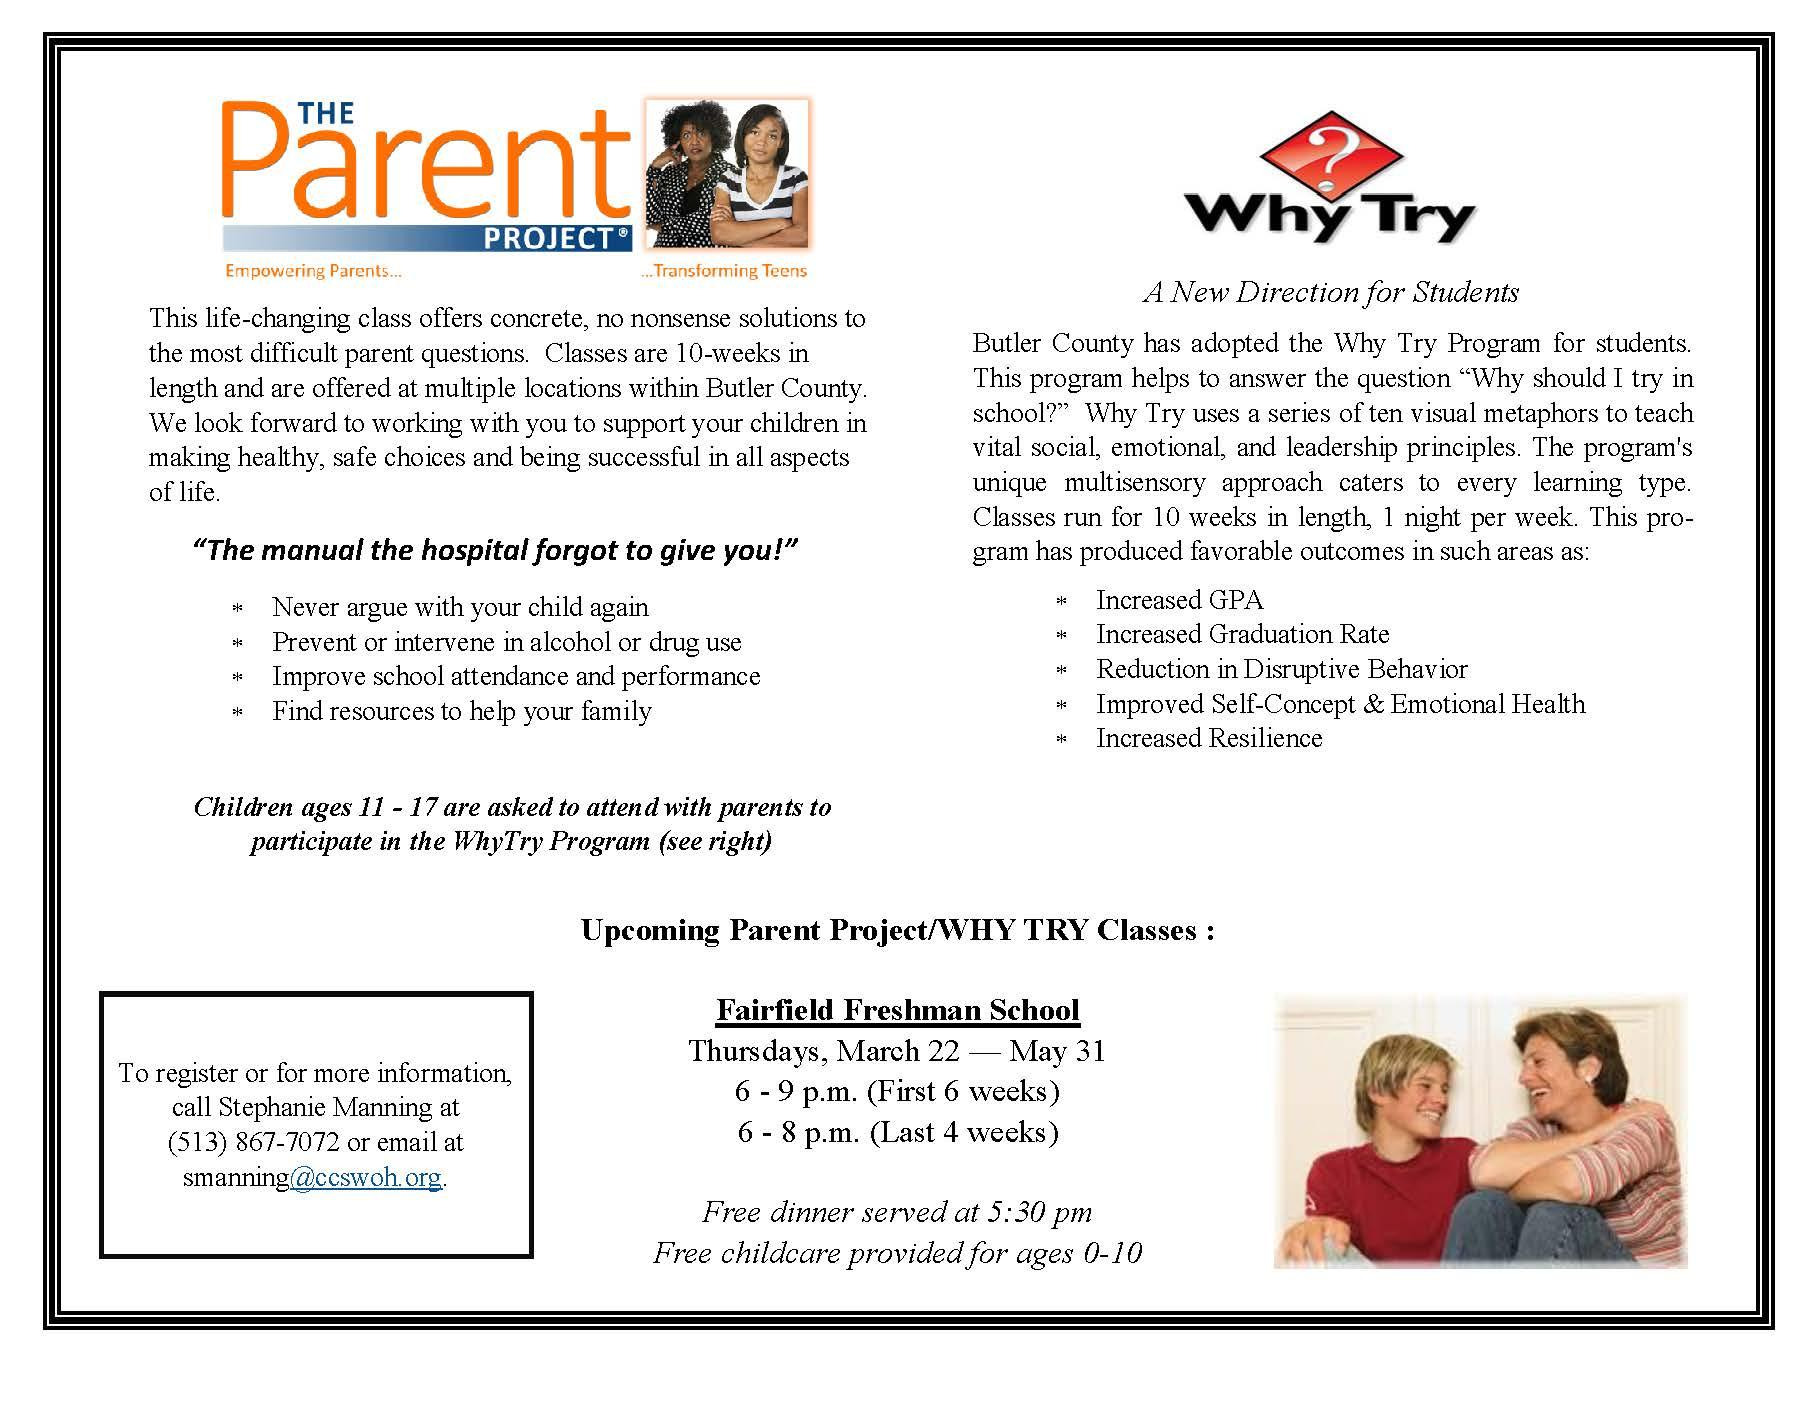 Image of the Parent Project flyer, which is also listed at the bottom of this web page as a pdf file.